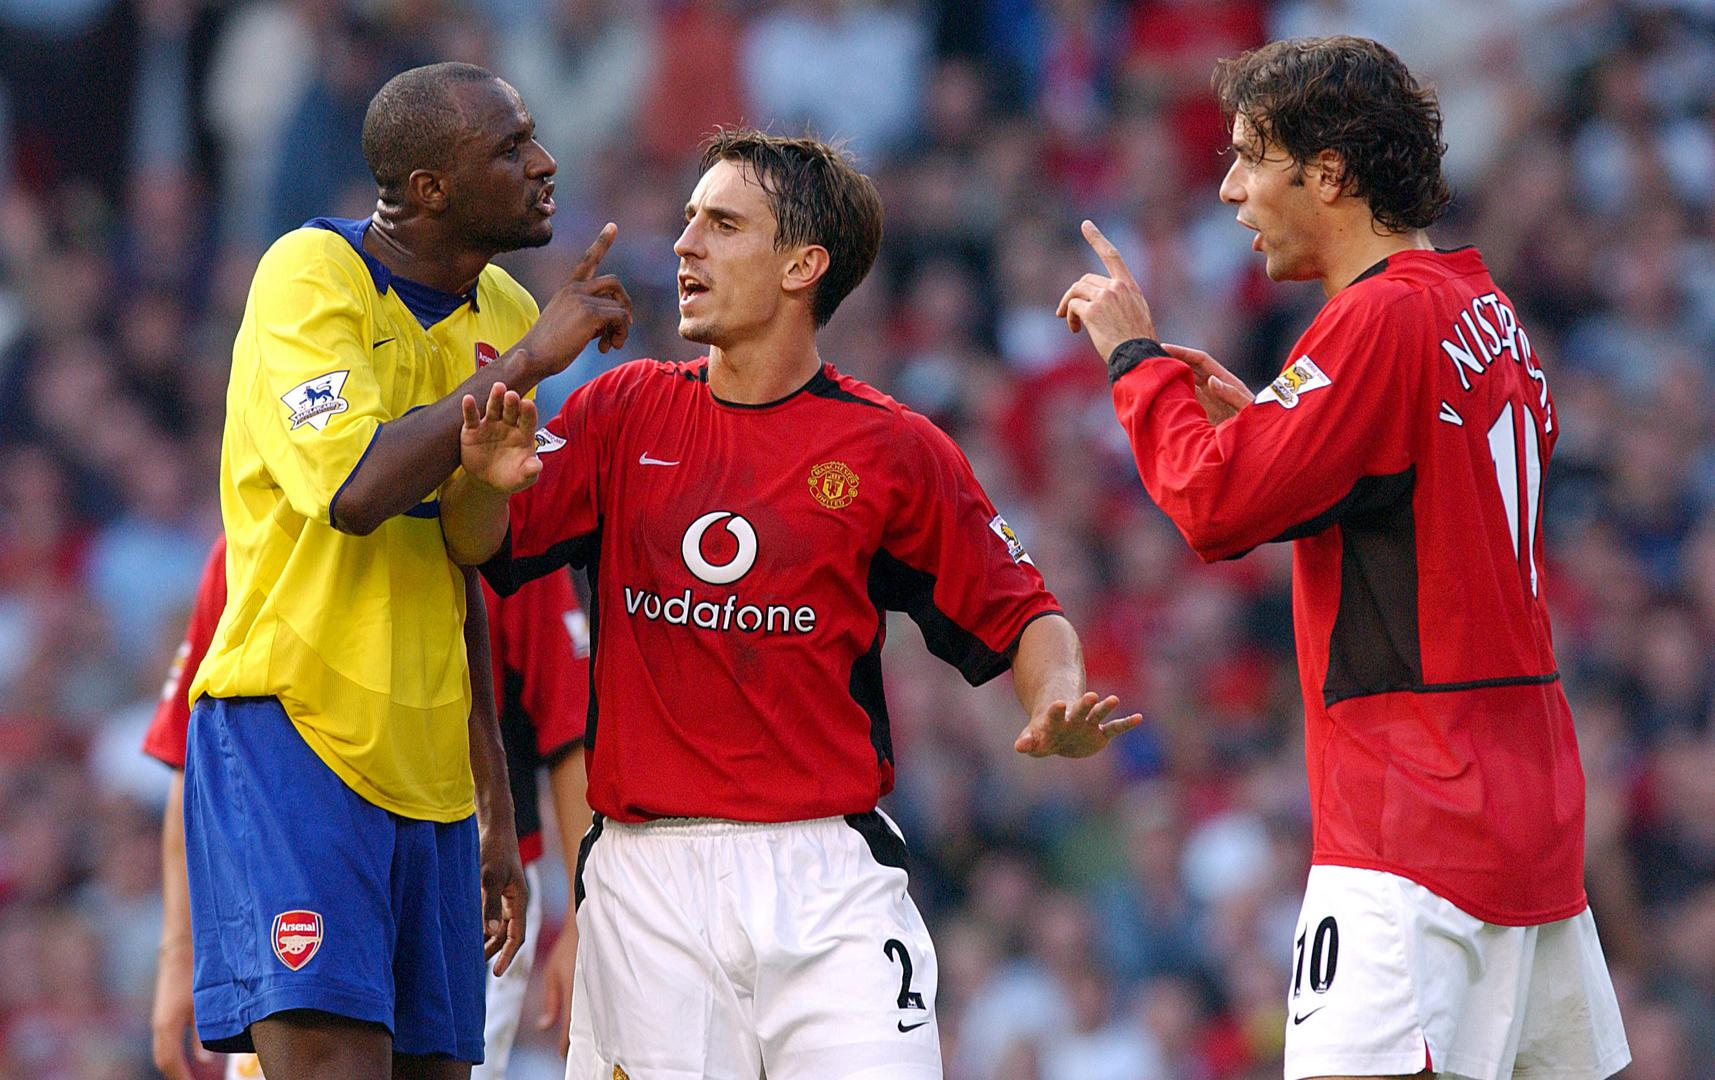 Ruud van Nistelrooy, Gary Neville and Patrick Vieira